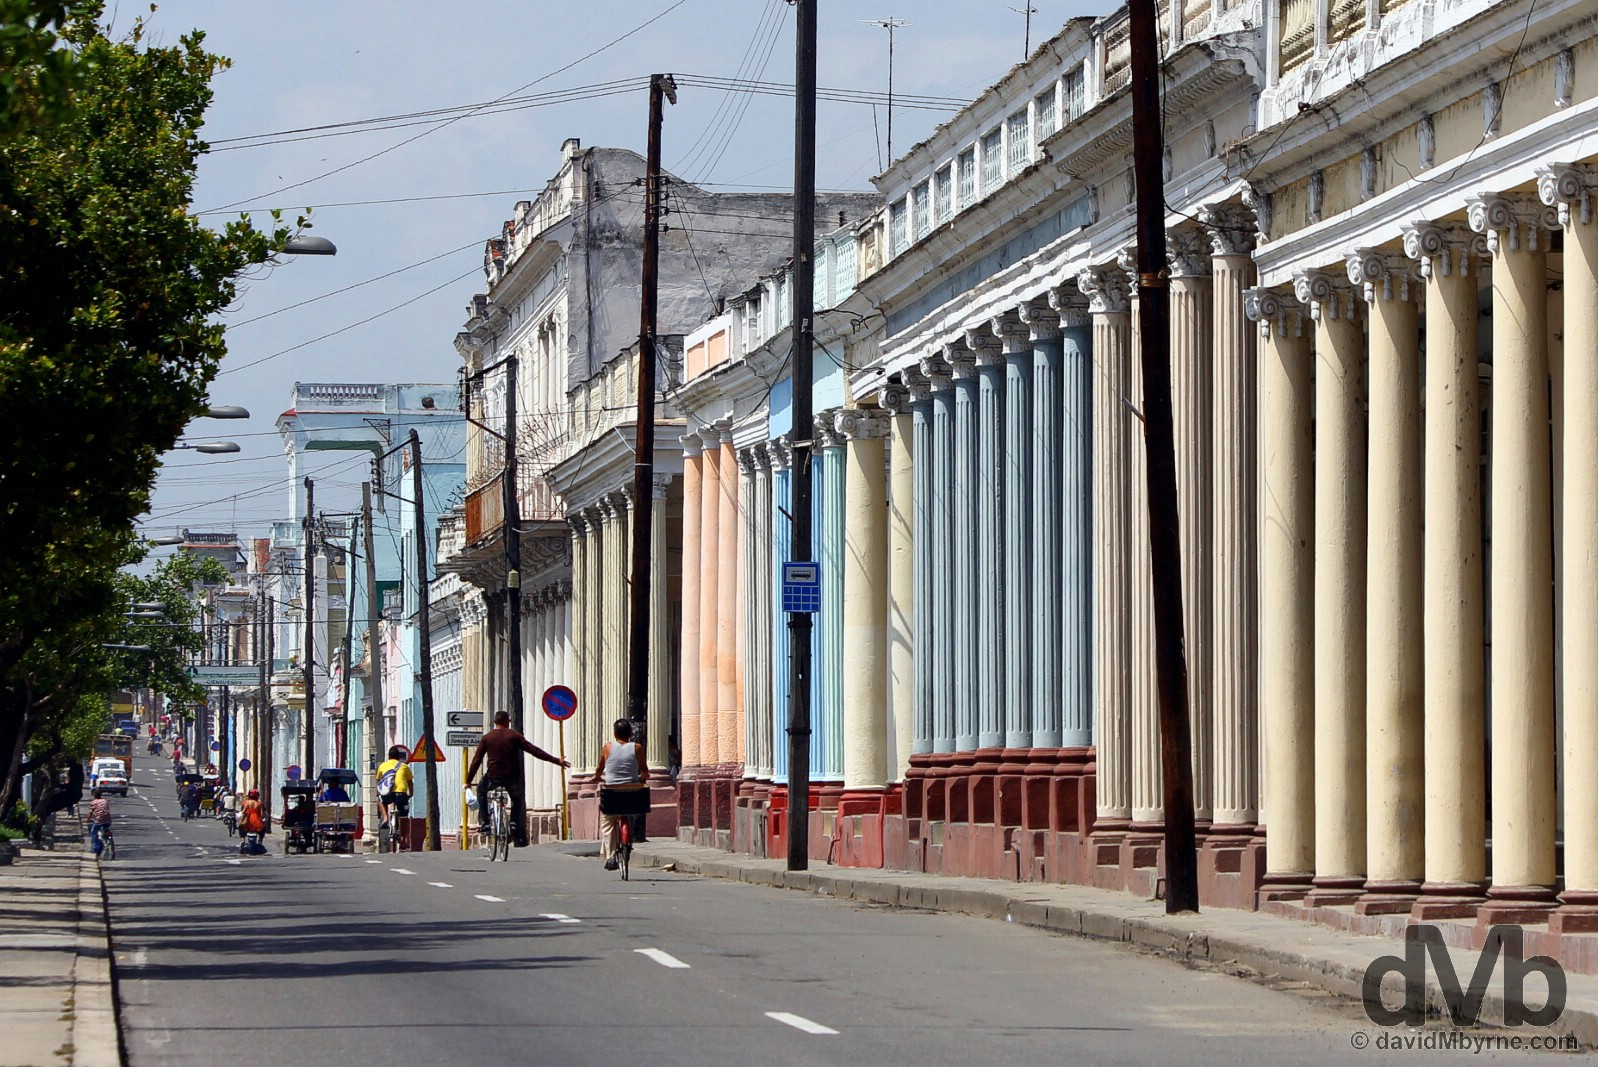 A section of the colonnaded Paseo del Prado in Cienfuegos, Cuba. May 8, 2015.